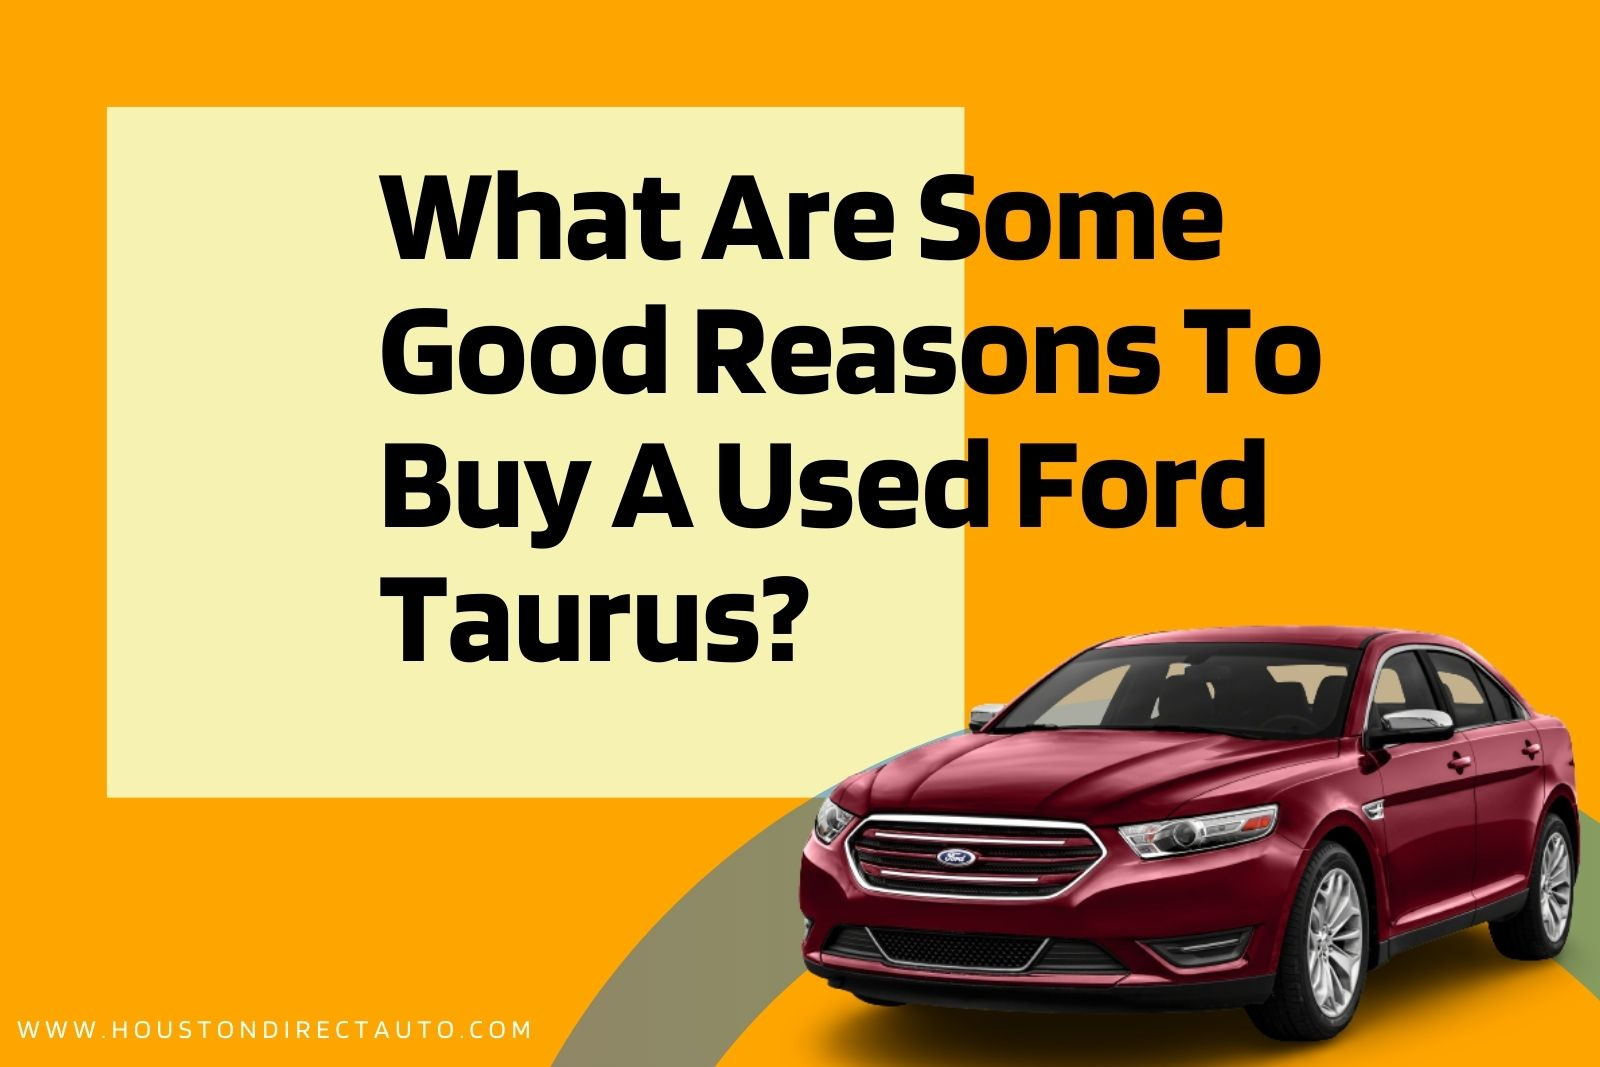 Ford Used Cars In Houston TX